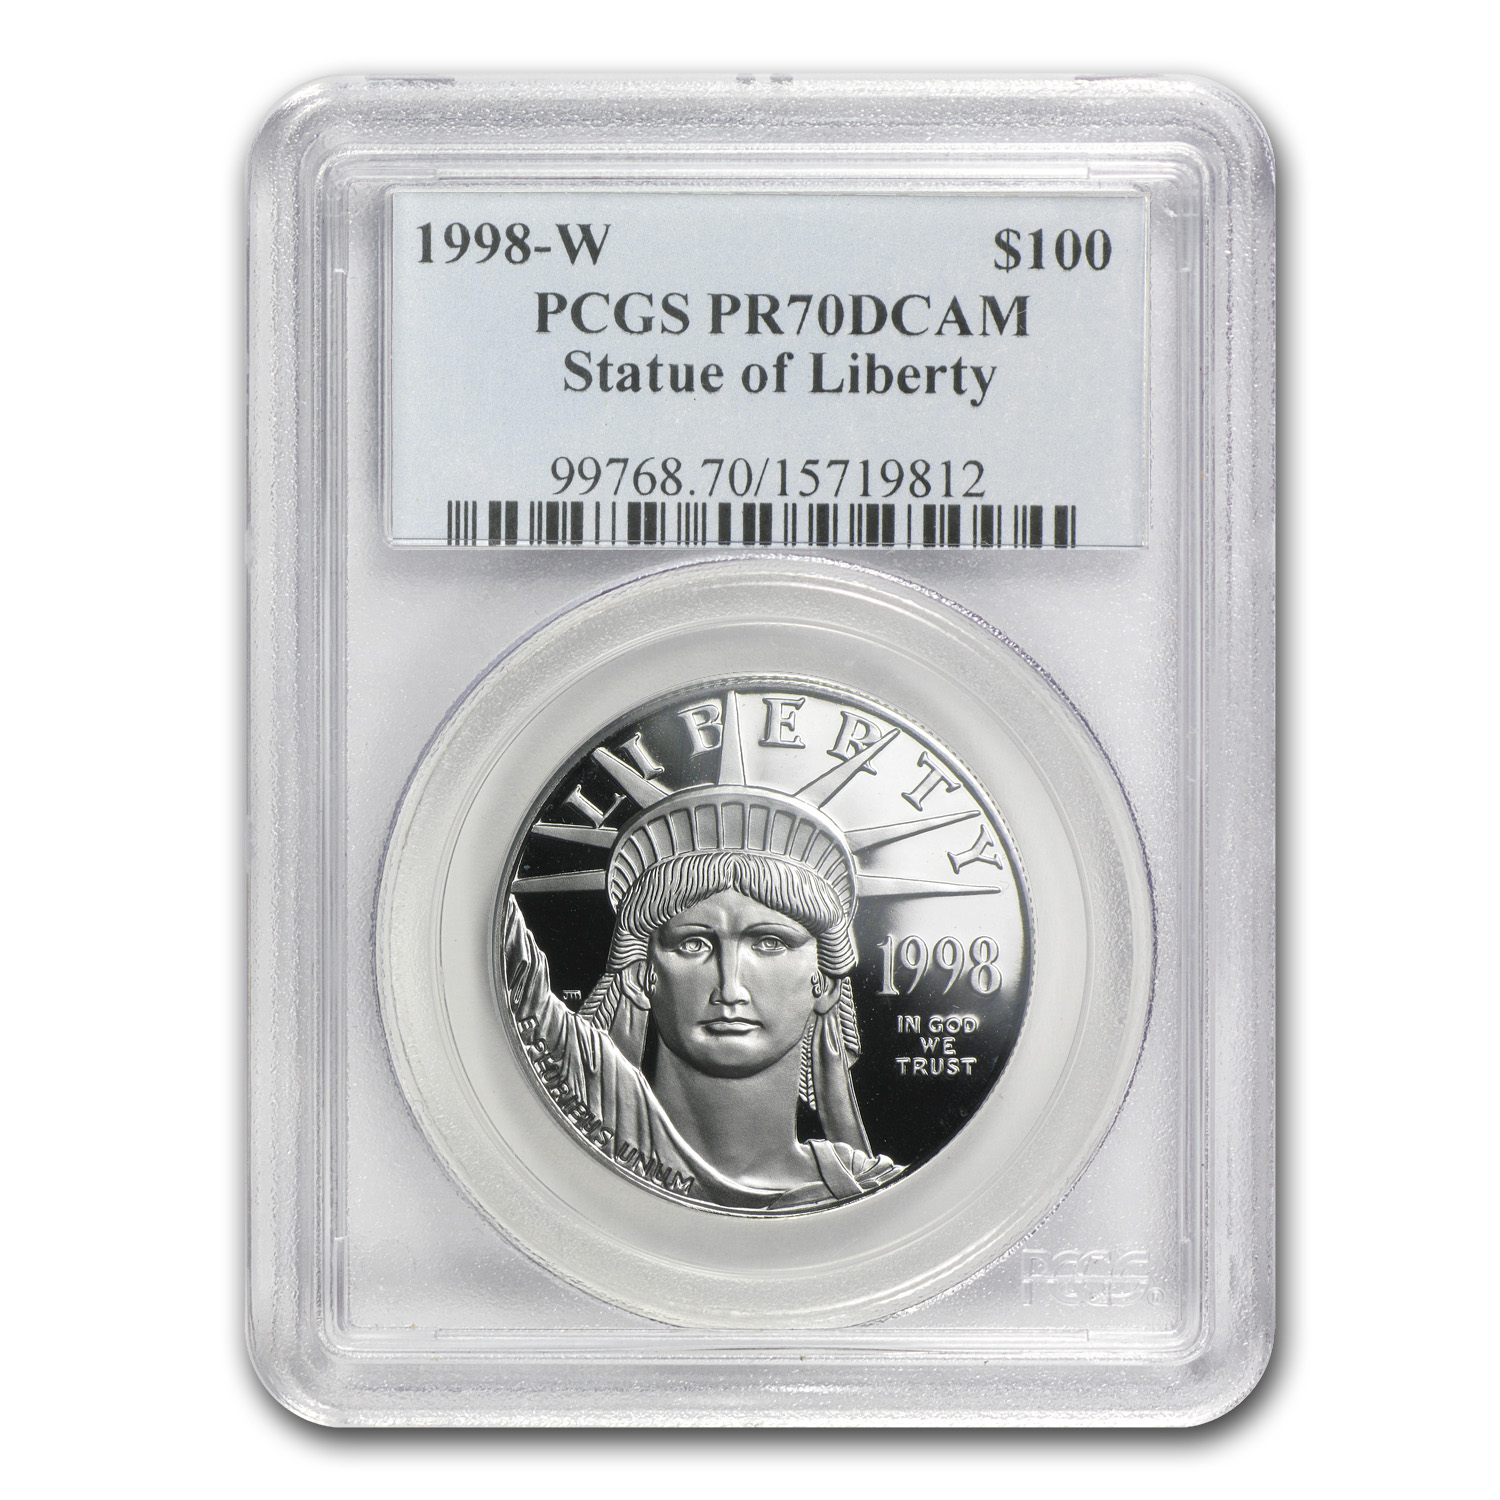 1998-W 4-Coin Proof Platinum American Eagle Set PR-70 PCGS